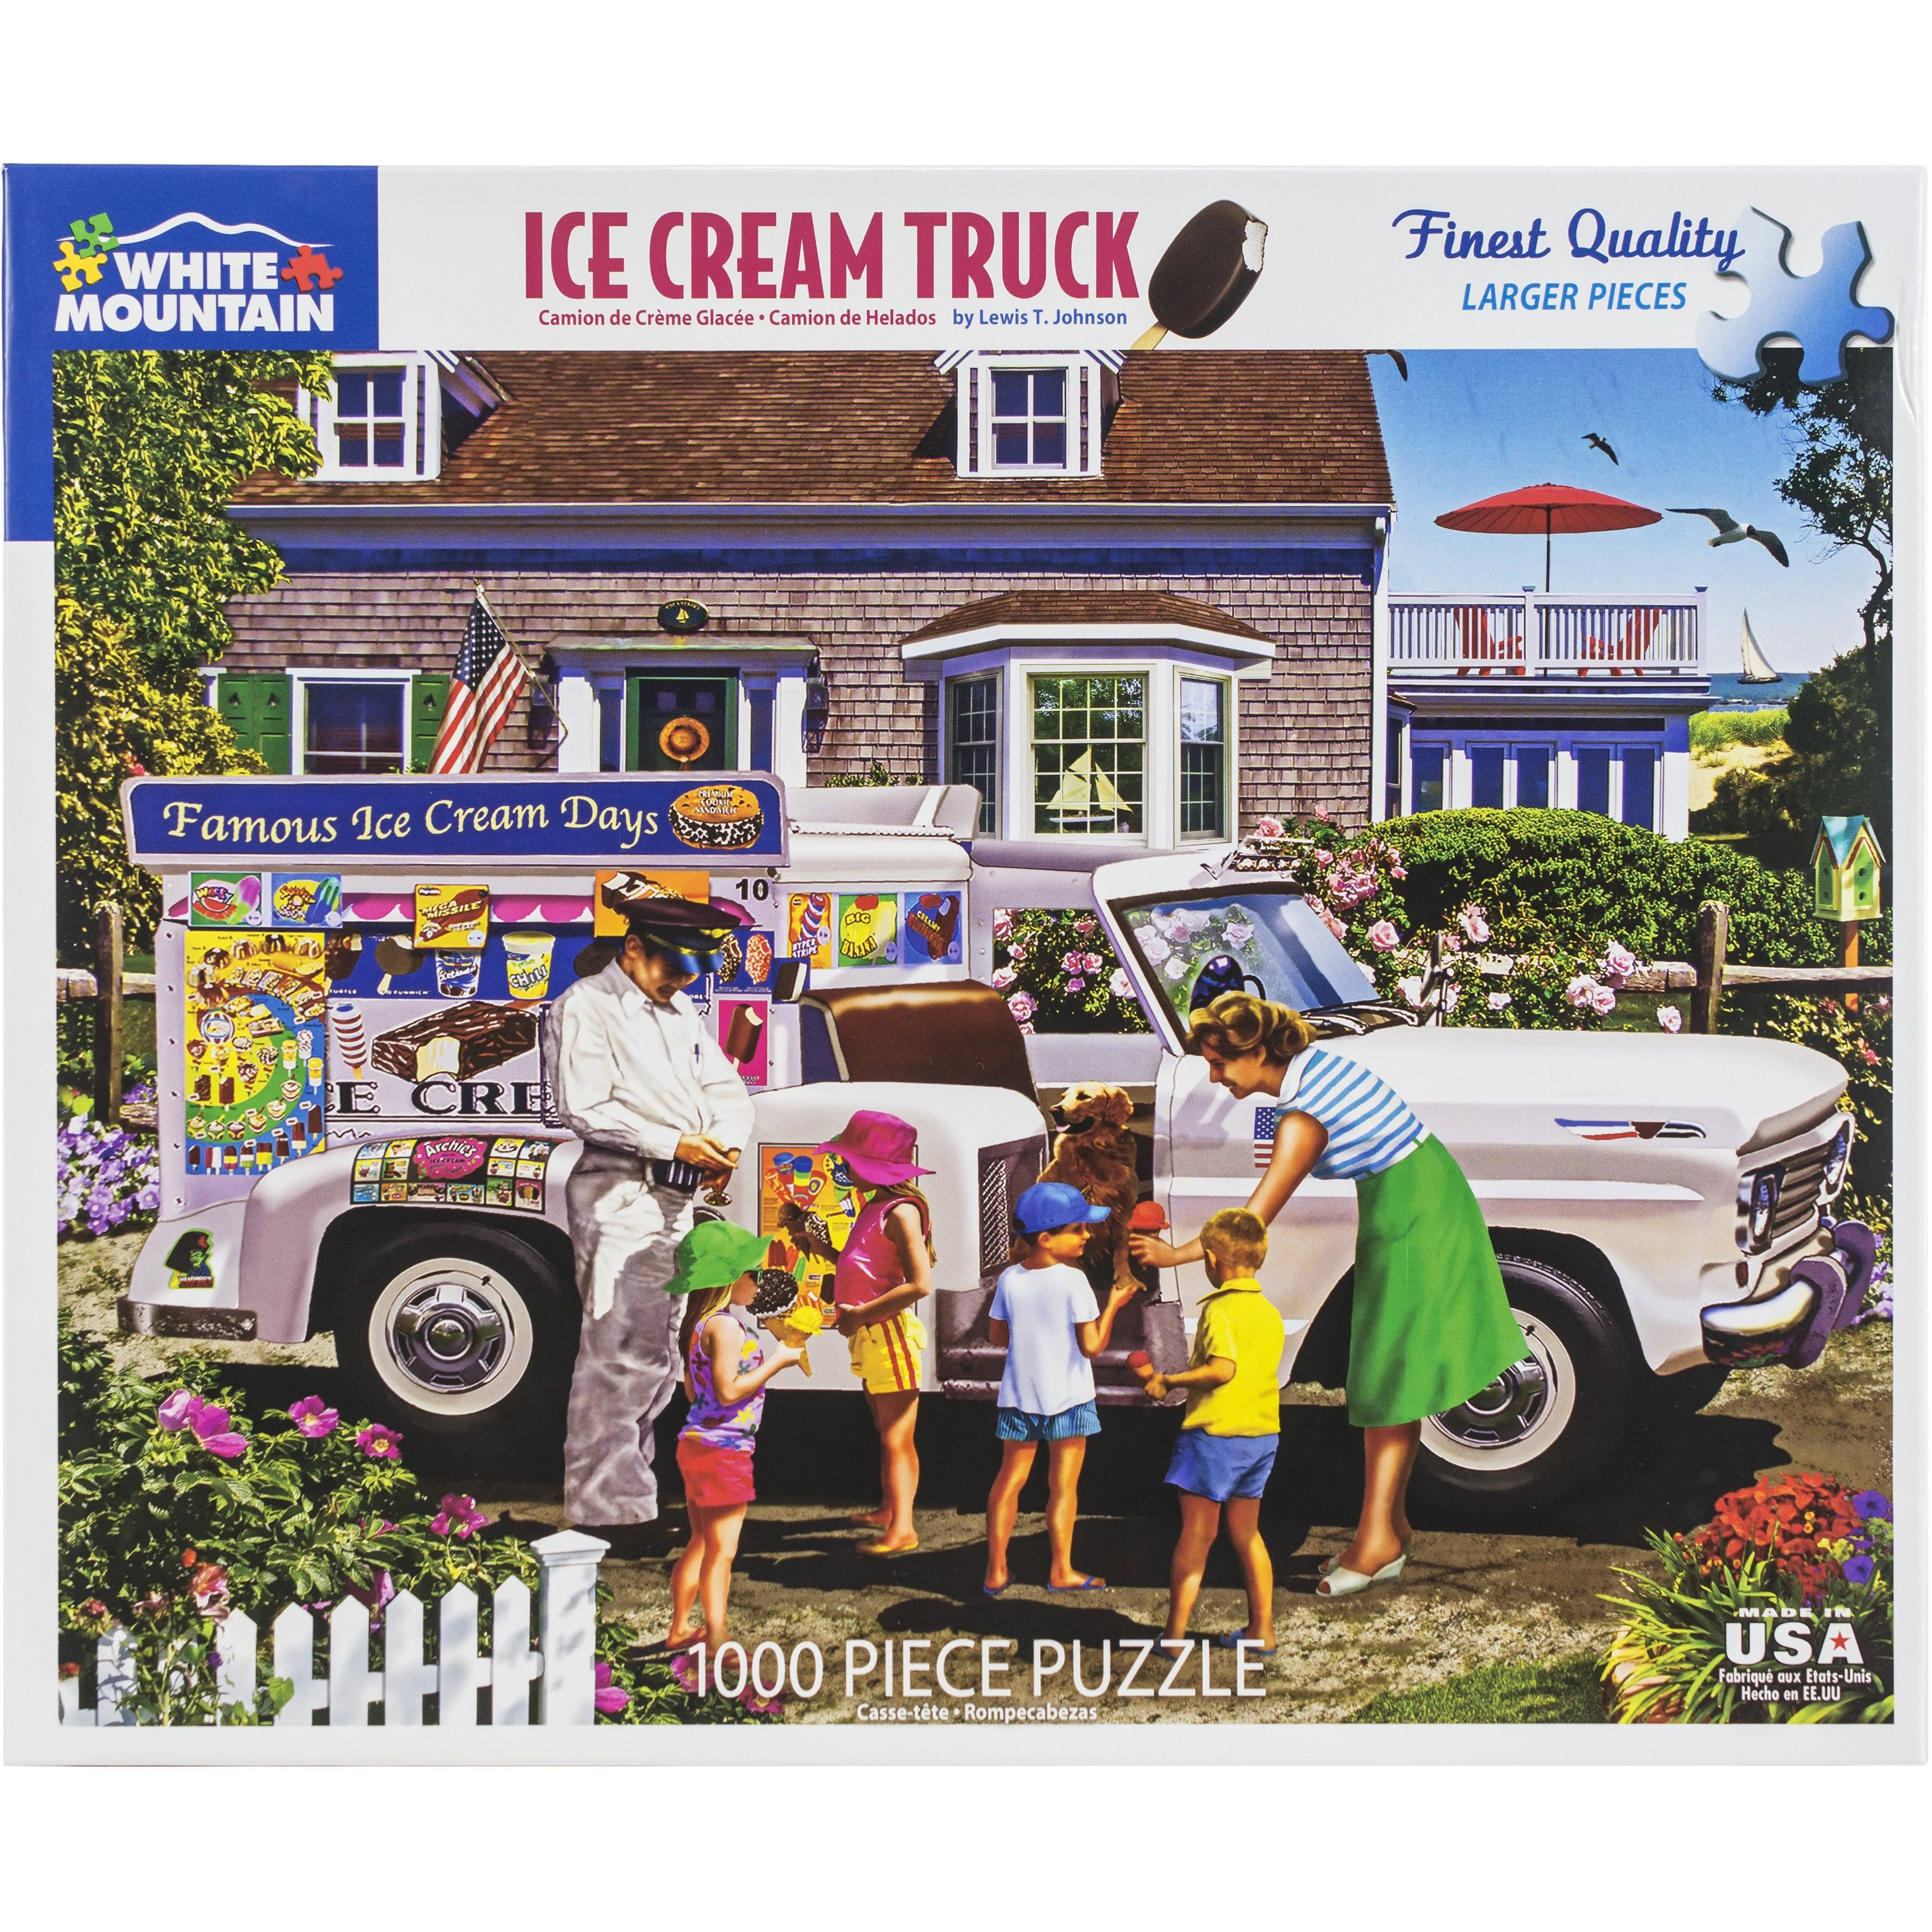 White Mountain Puzzles Ice Cream Truck - 1000 Piece Jigsaw Puzzle